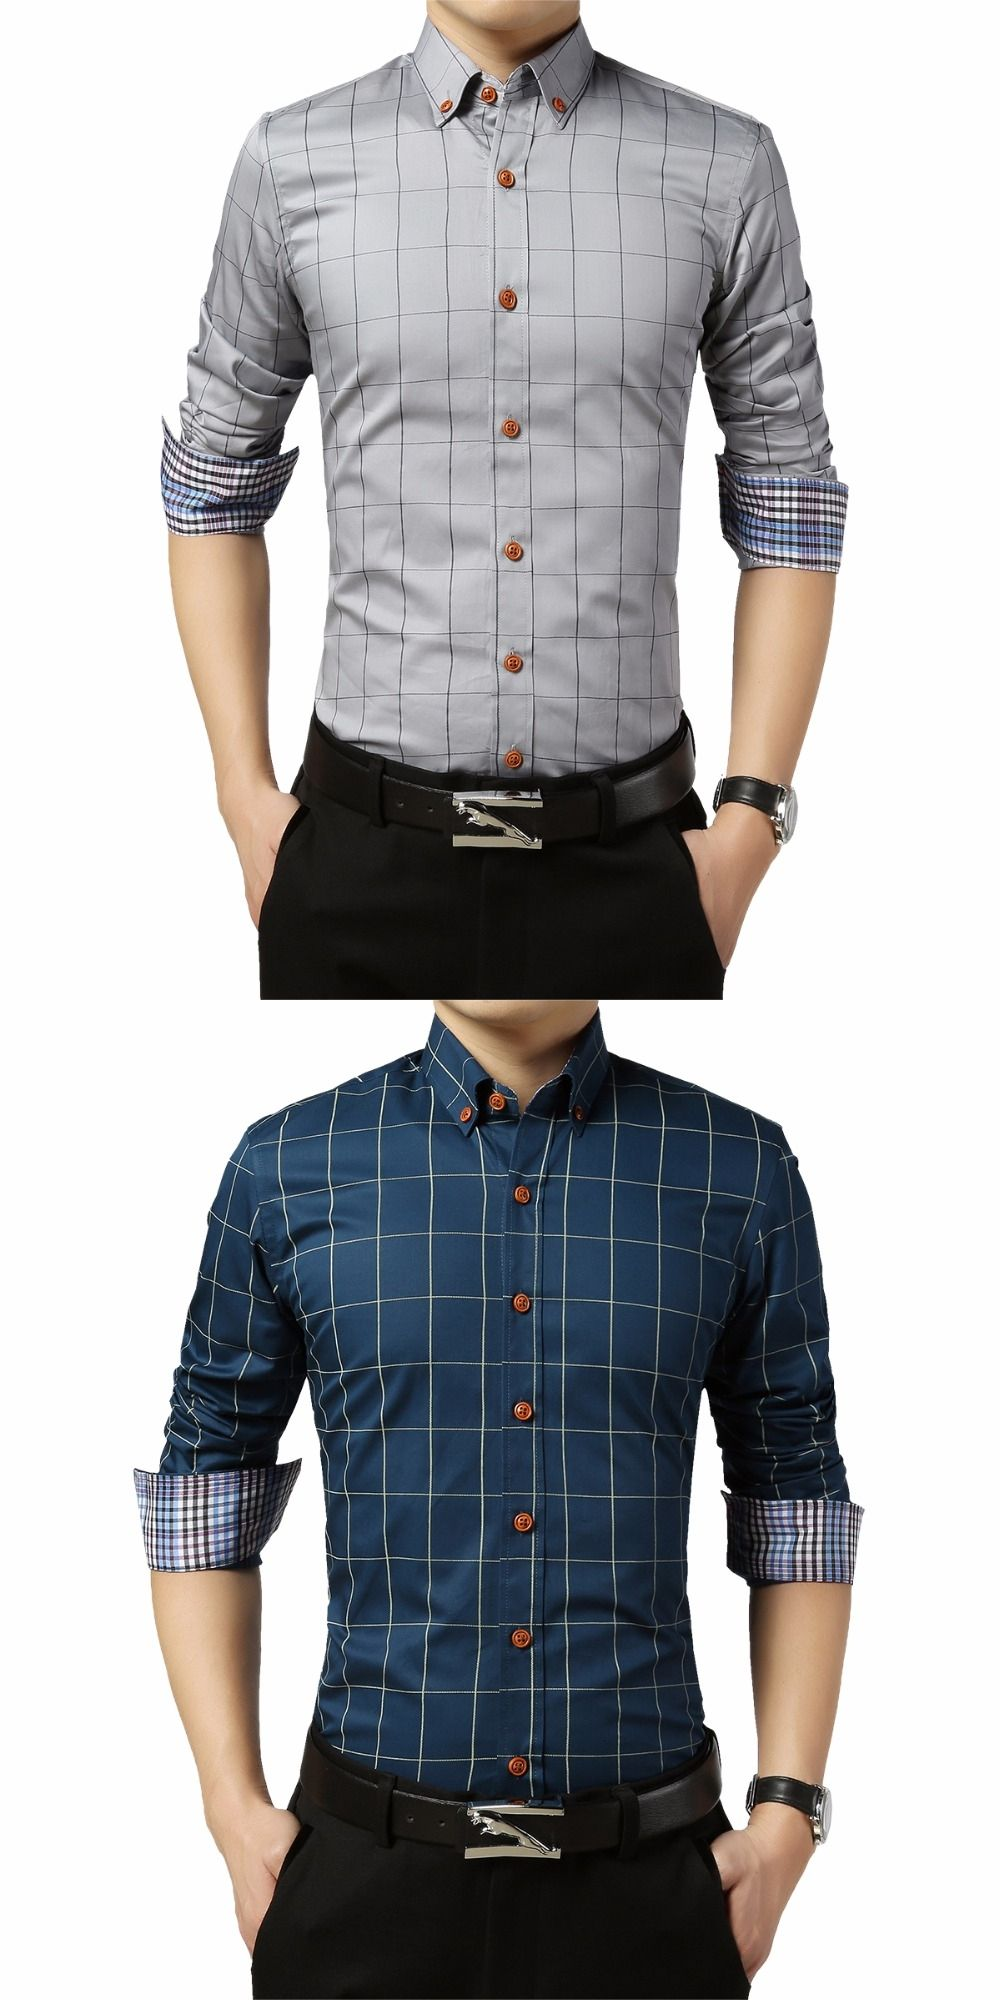 88c333ea26b TFETTERS Brand Big Sale Men Plaid Shirt Long Sleeve Dress Shirt Turn Down  Collar Social Shirt